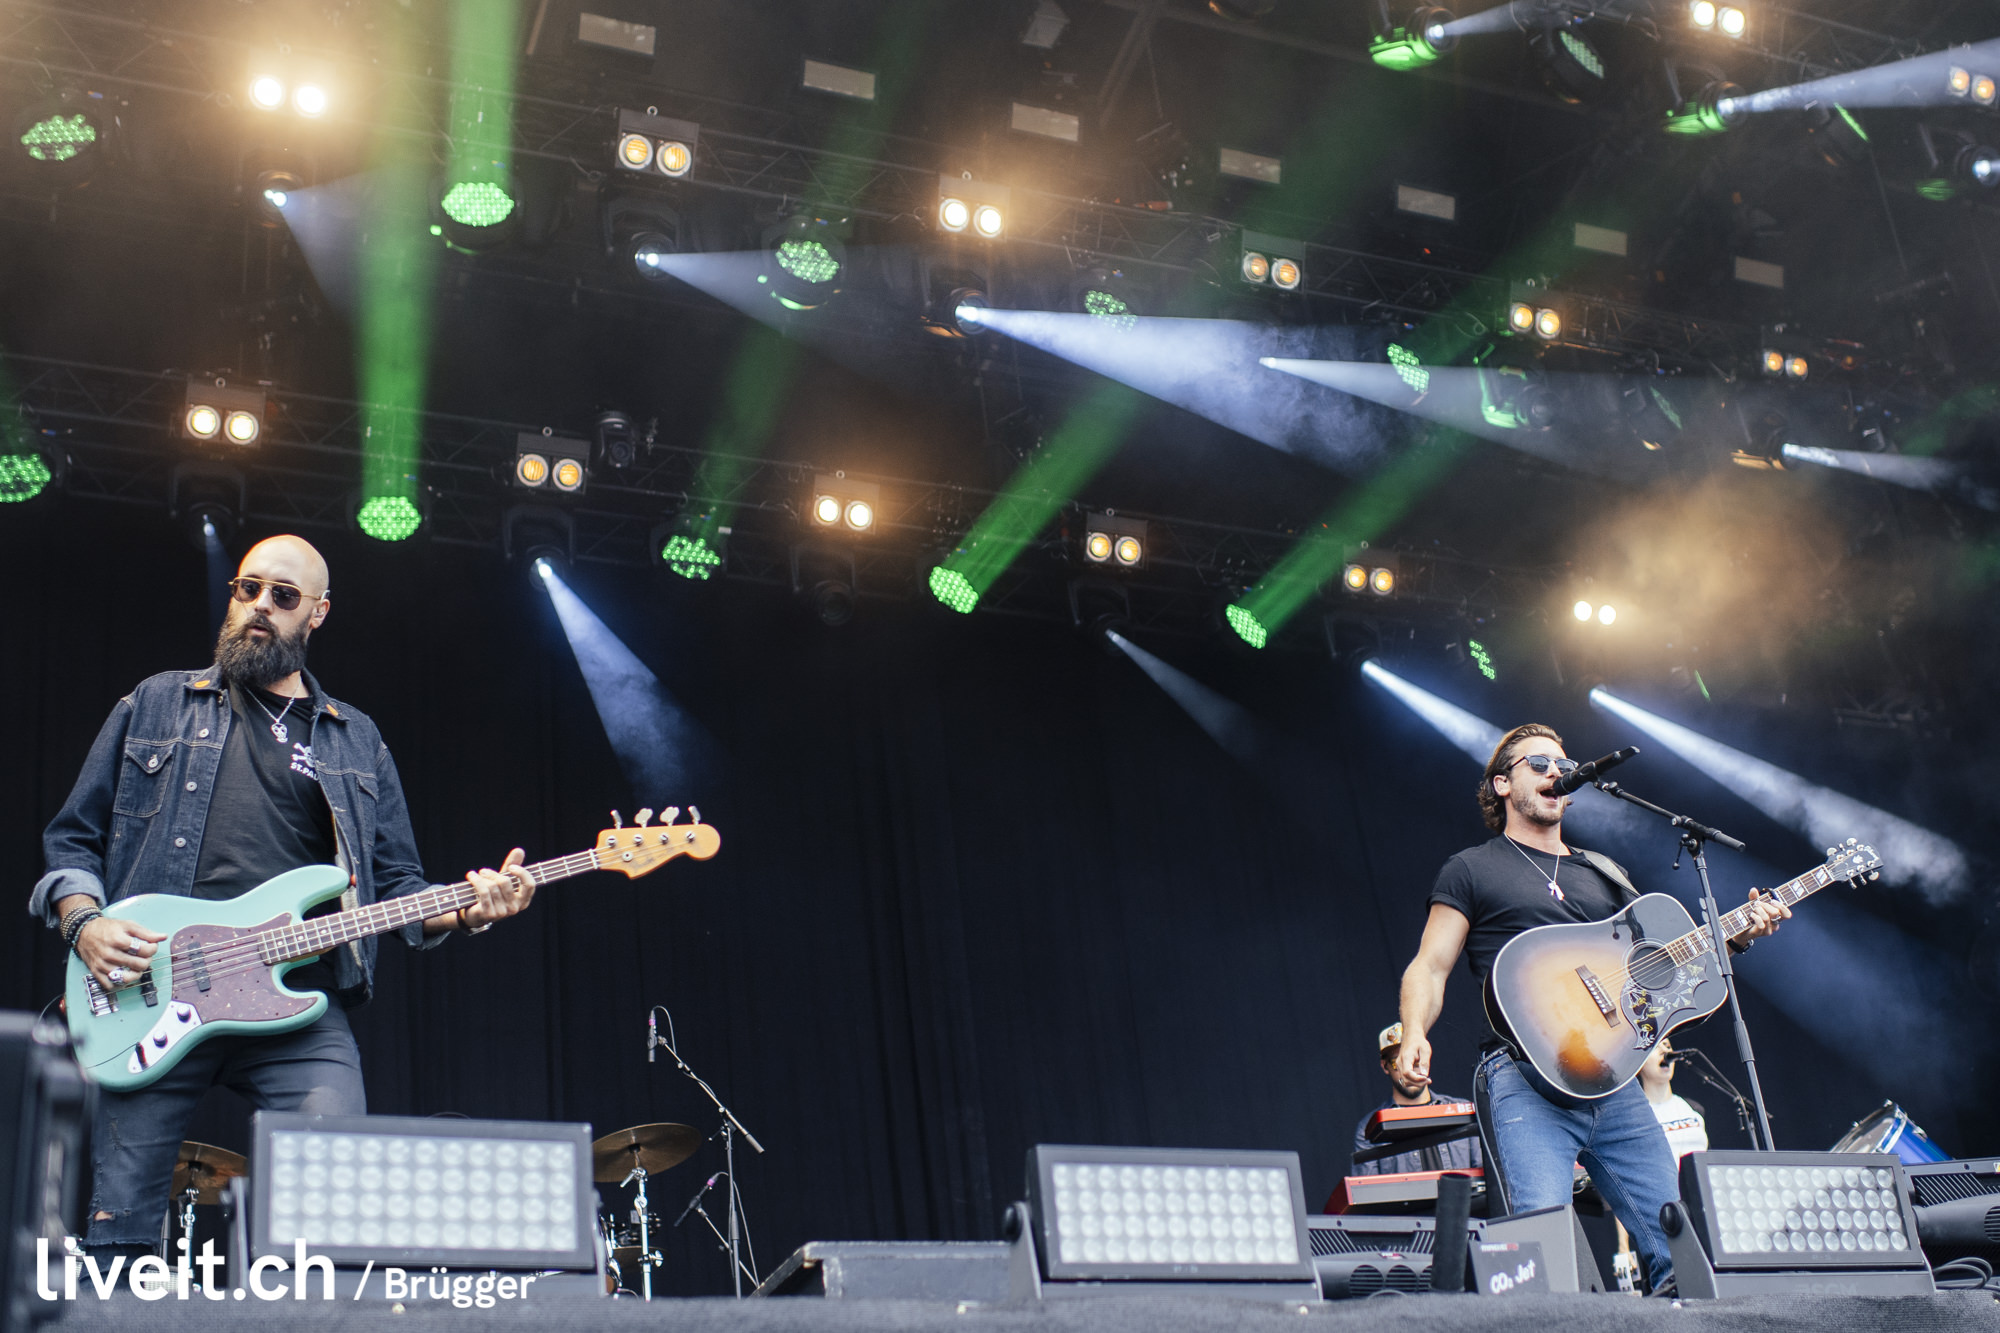 Bastian Baker am Seaside Festival 2019